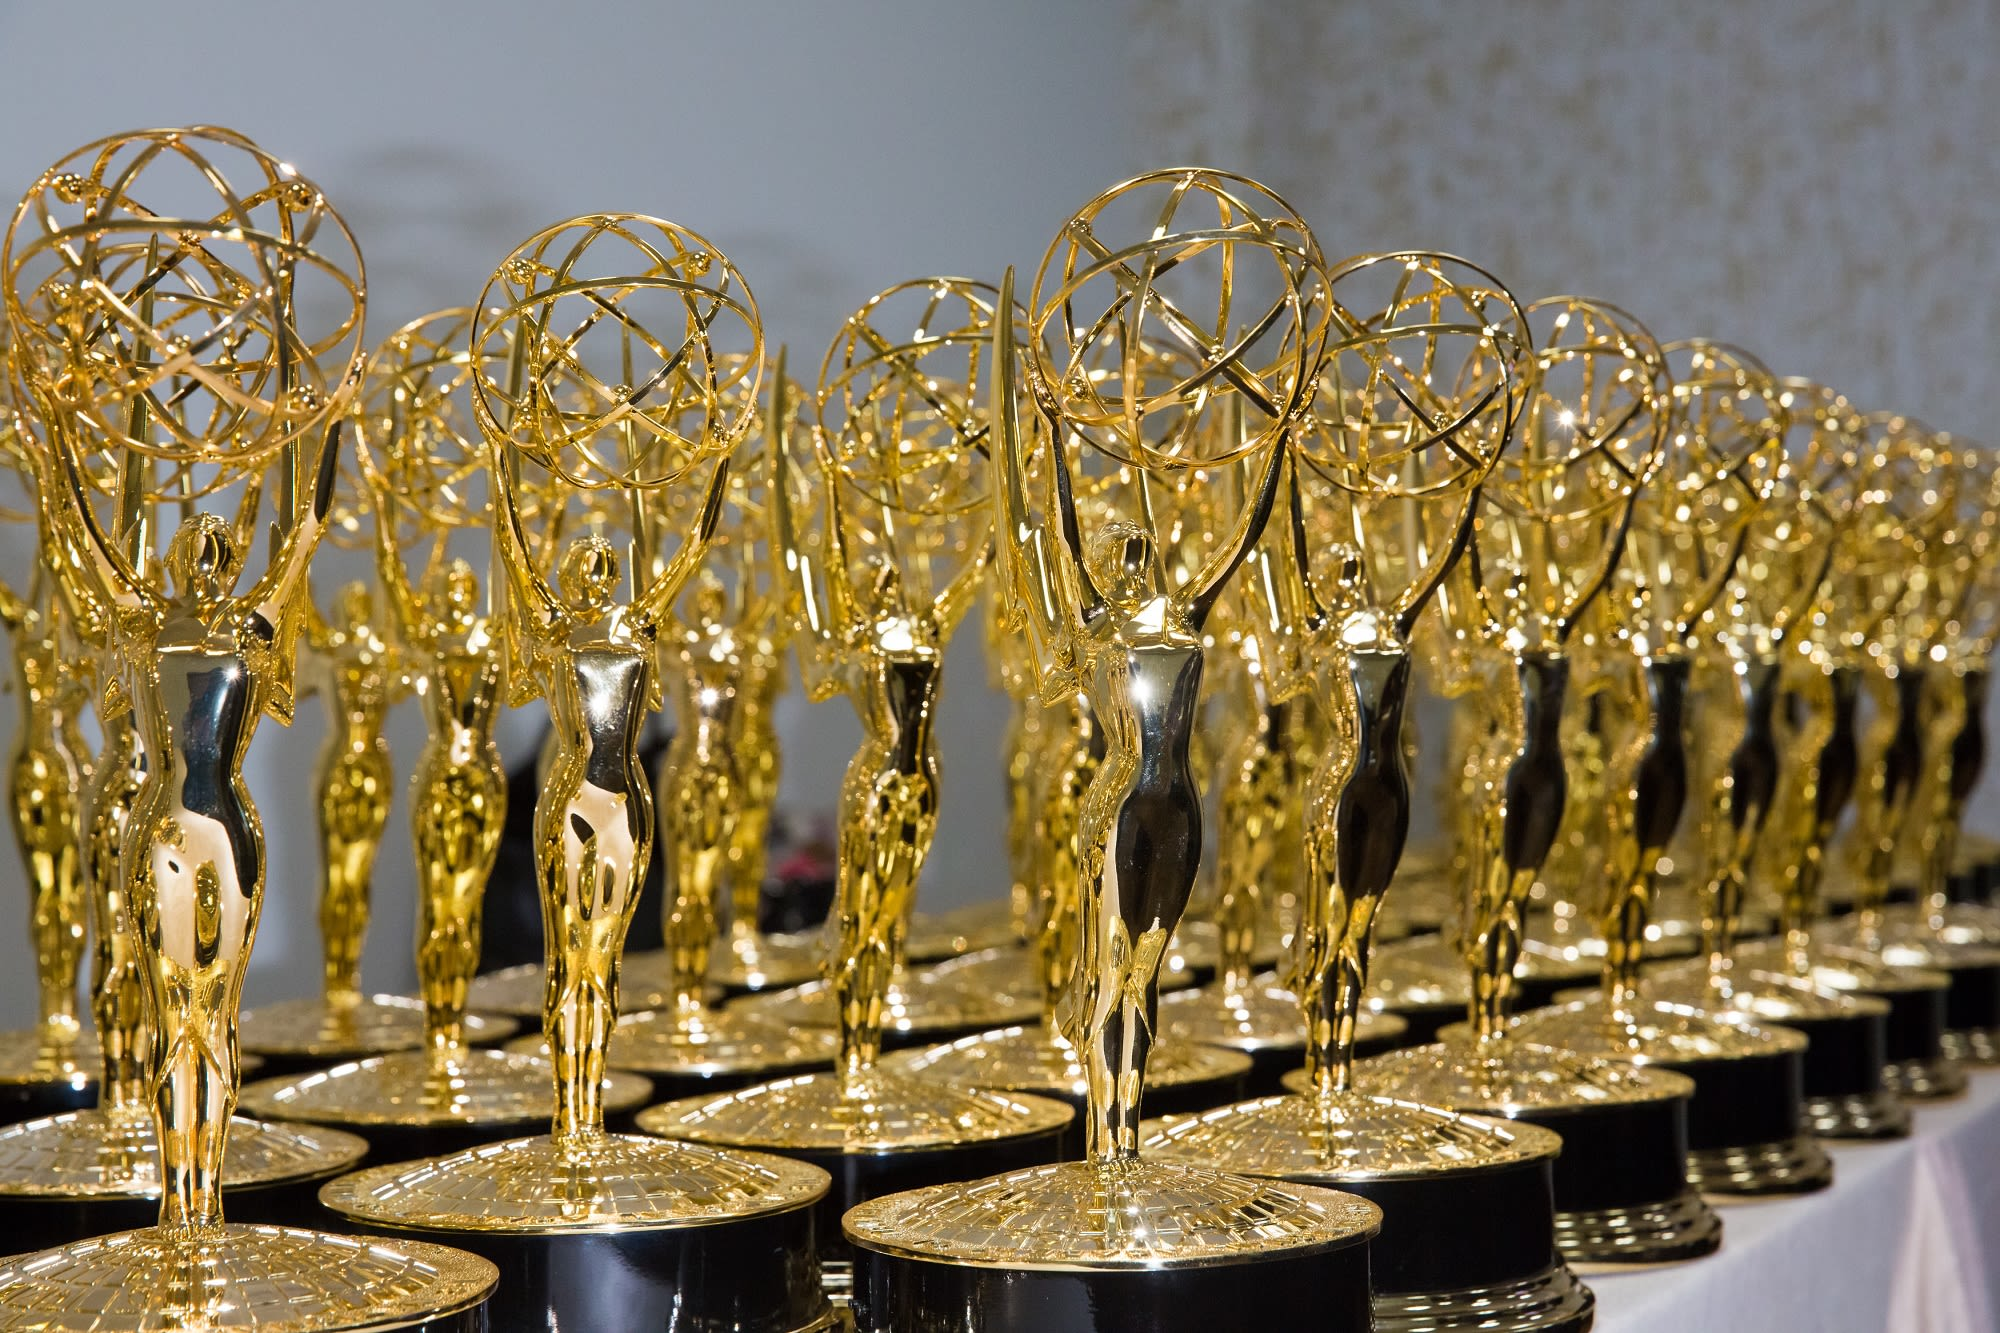 The Emmy statuettes, all ready for to be given to those who claimed Emmy nominations.